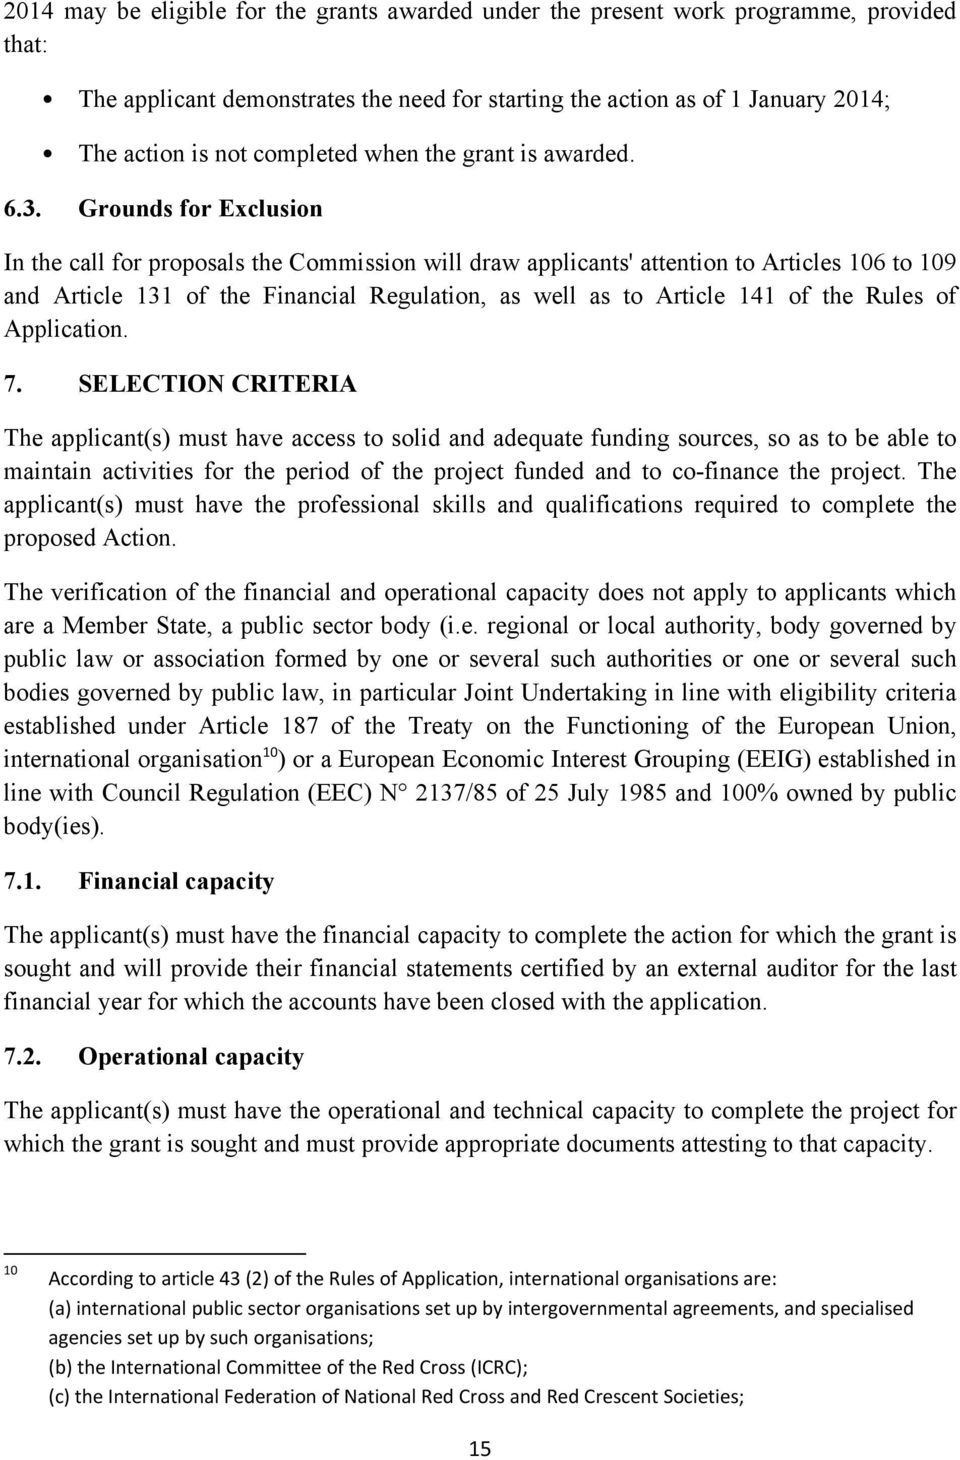 Grounds for Exclusion In the call for proposals the Commission will draw applicants' attention to Articles 106 to 109 and Article 131 of the Financial Regulation, as well as to Article 141 of the